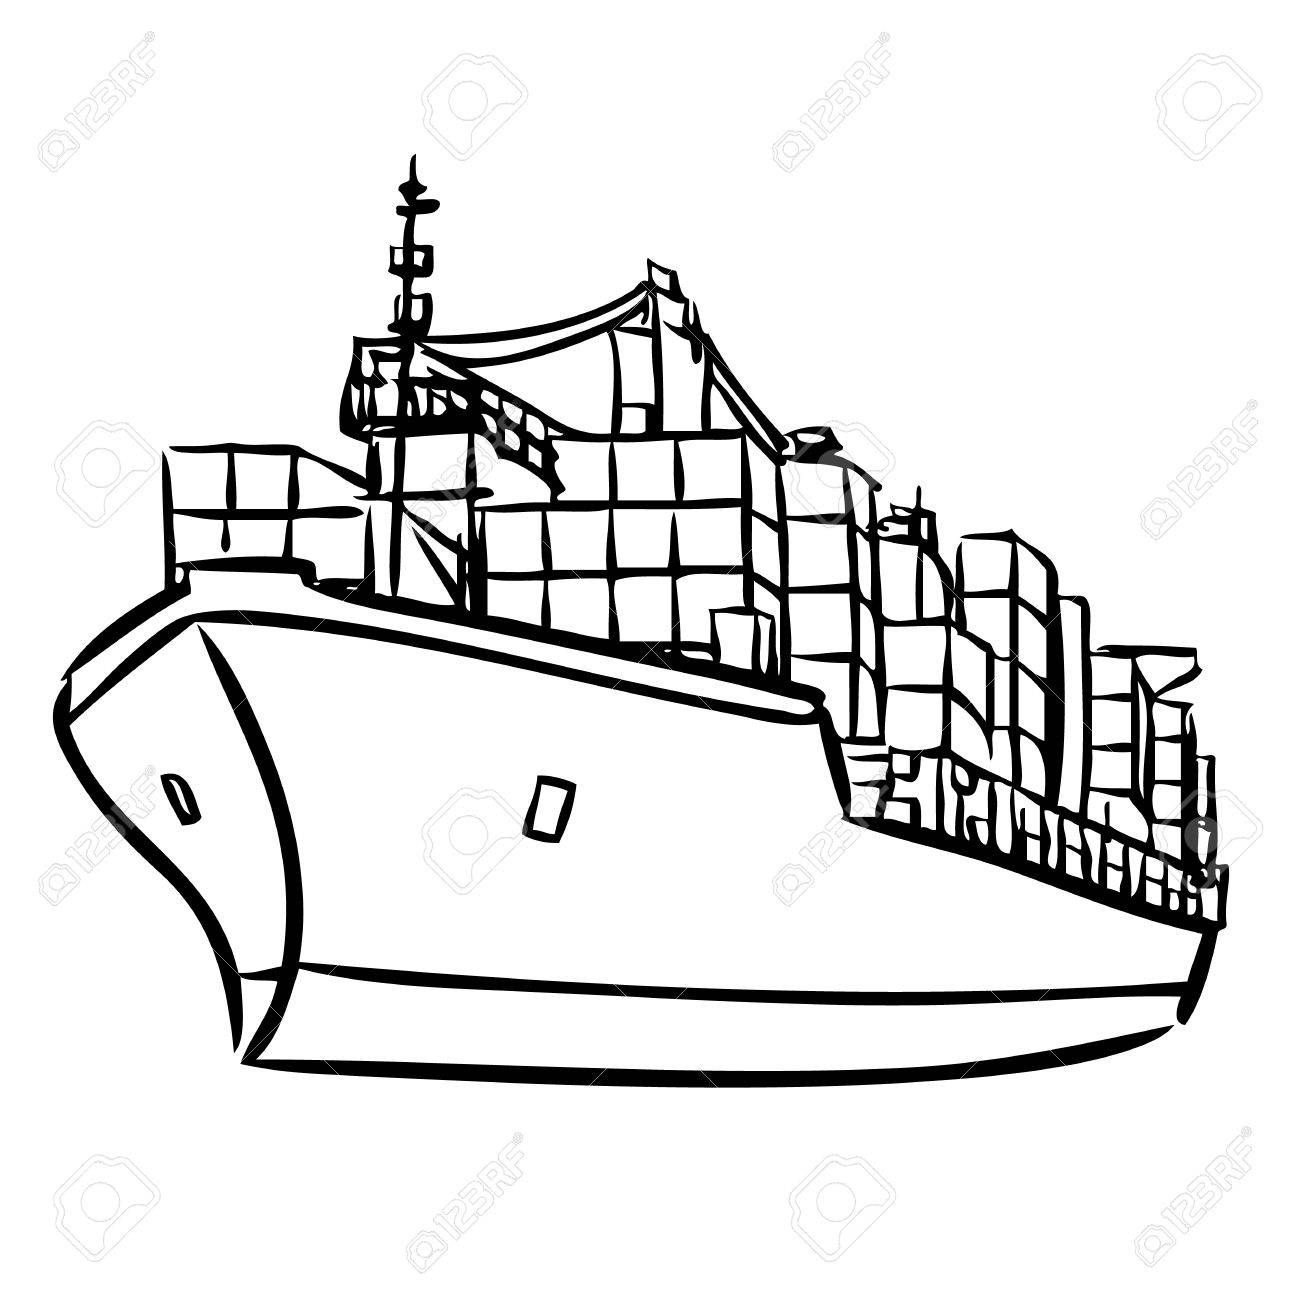 1300x1300 Freehand Sketch Illustration Of Cargo Ship With Containers Icon